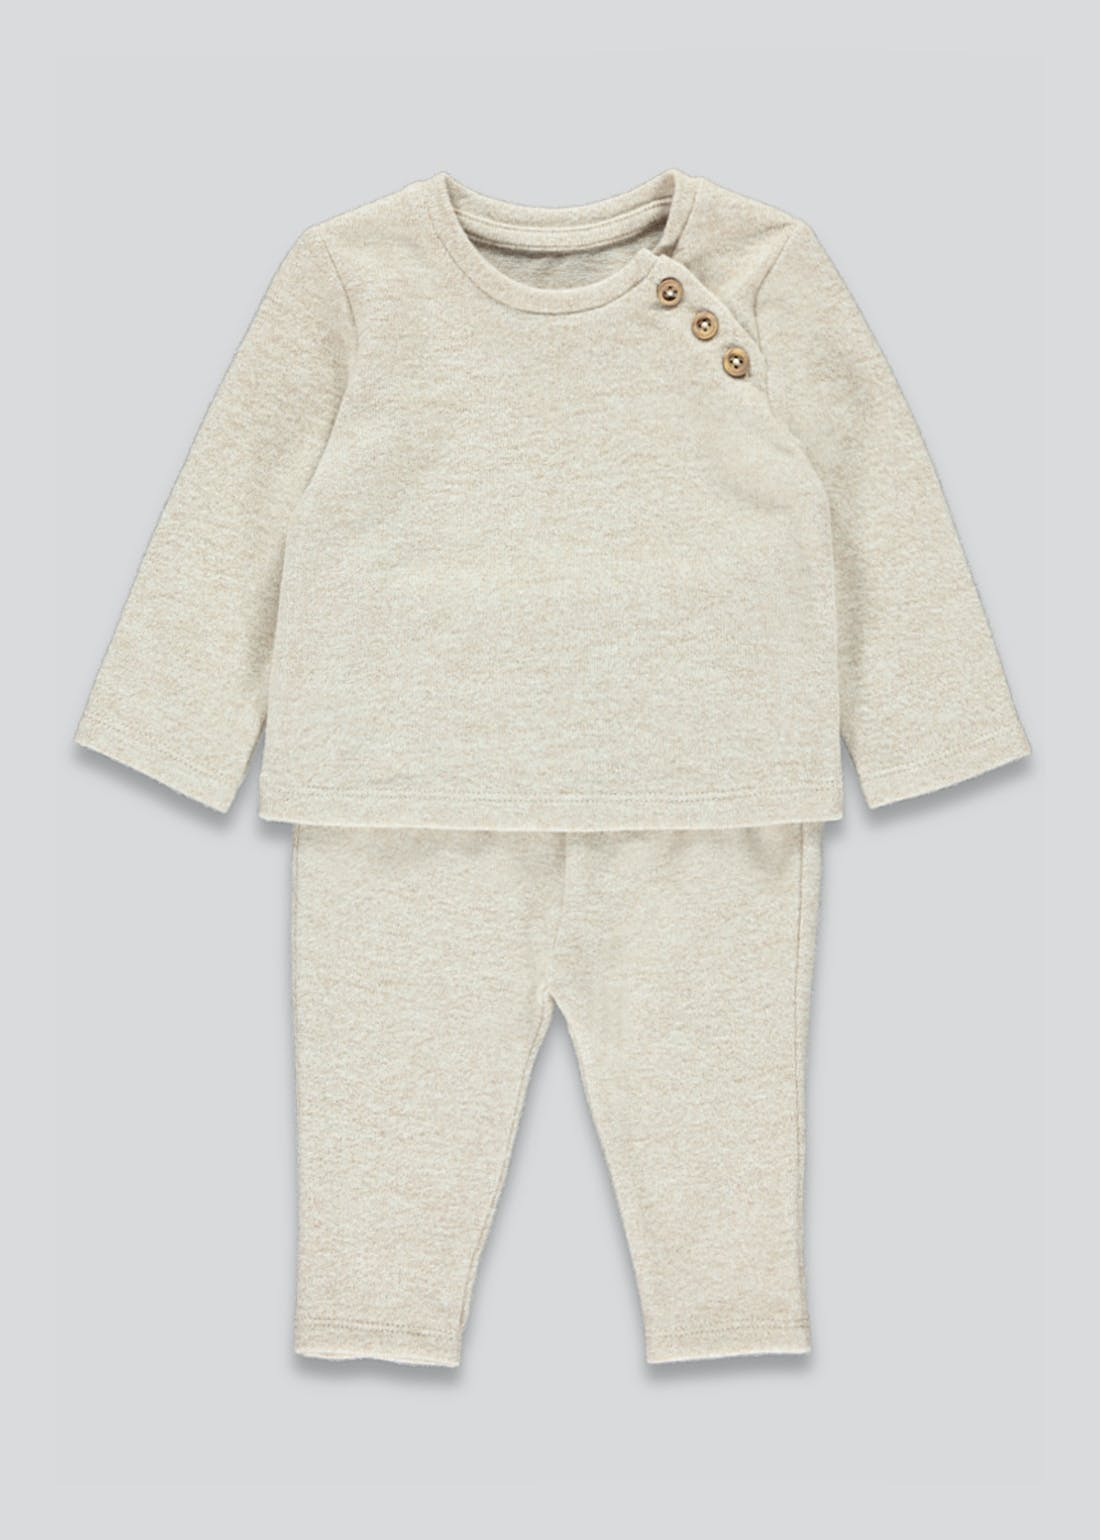 Unisex Button Top & Leggings Set (Newborn-23mths)